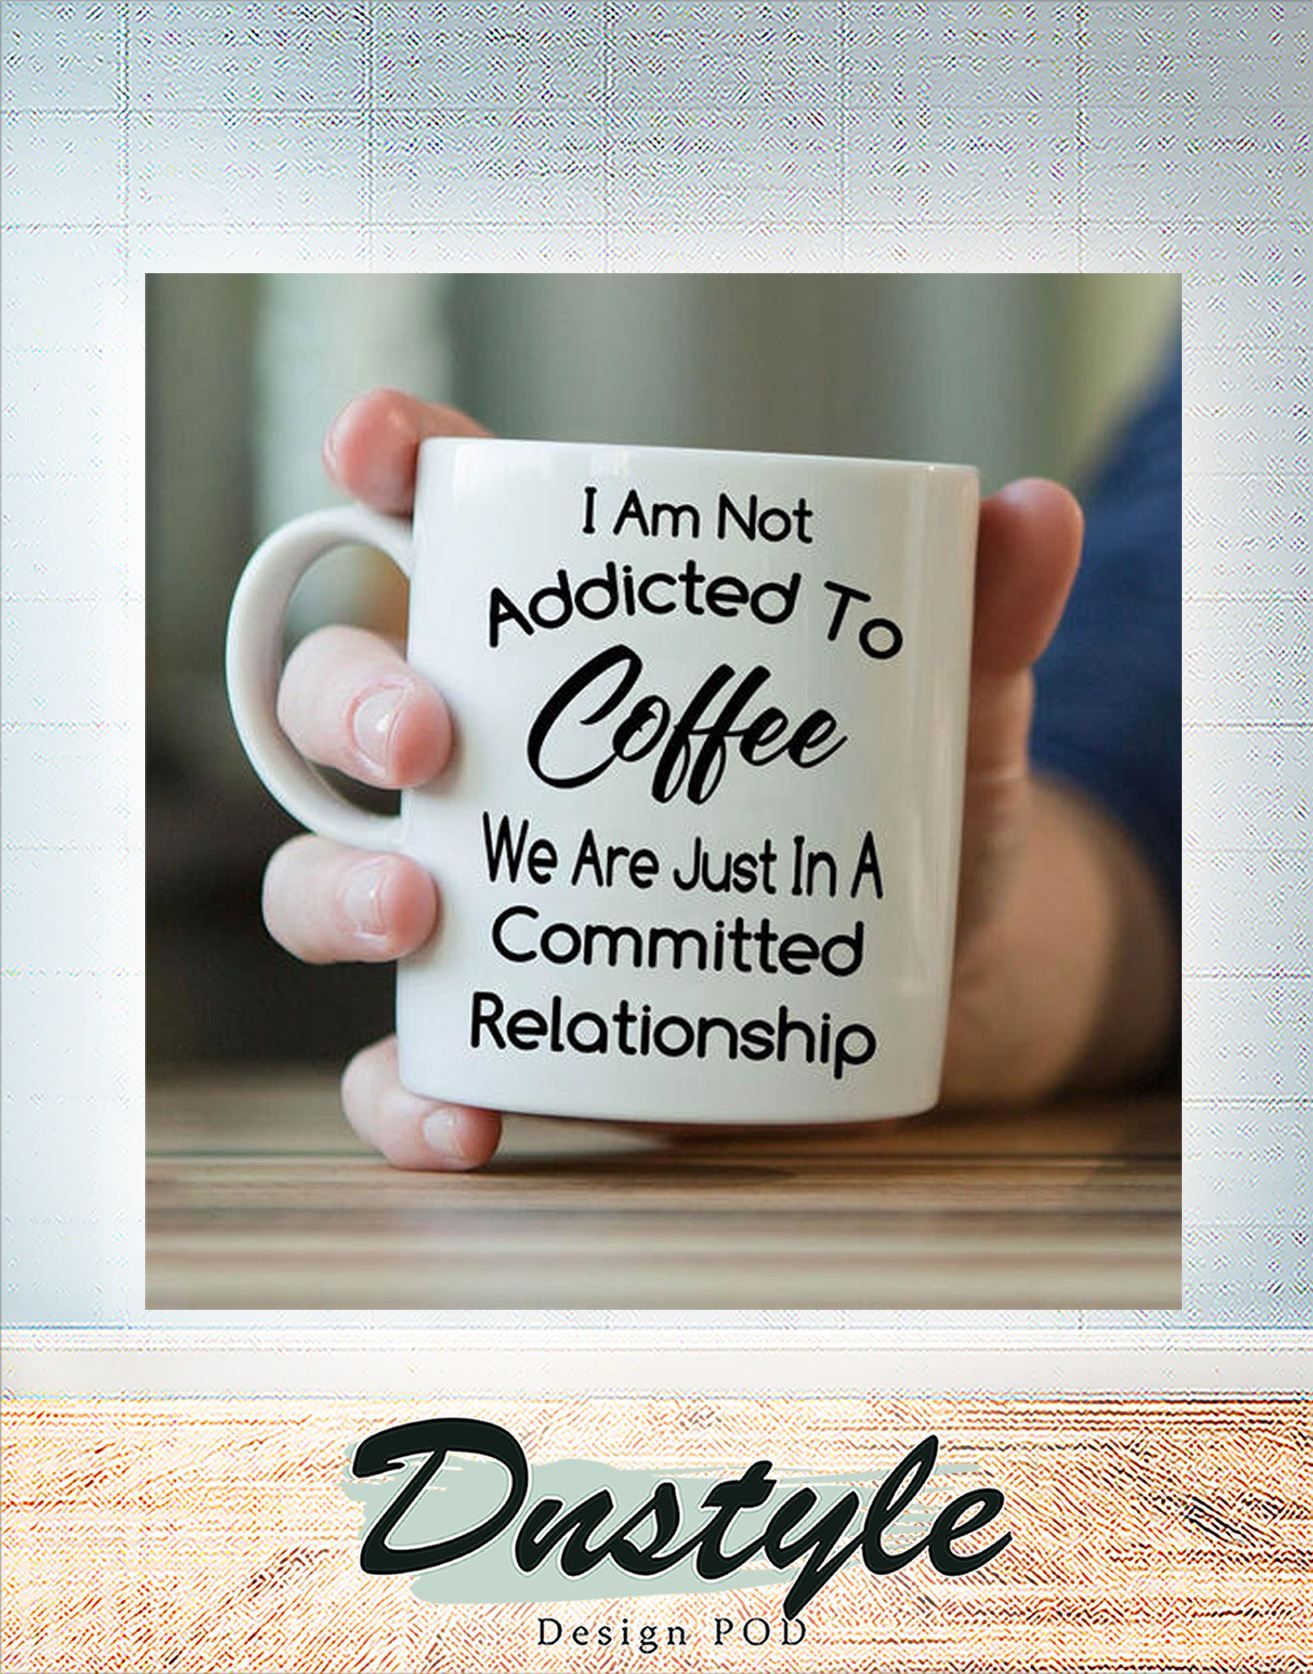 I am not addicted to coffee we are just in a committed relationship mug 2